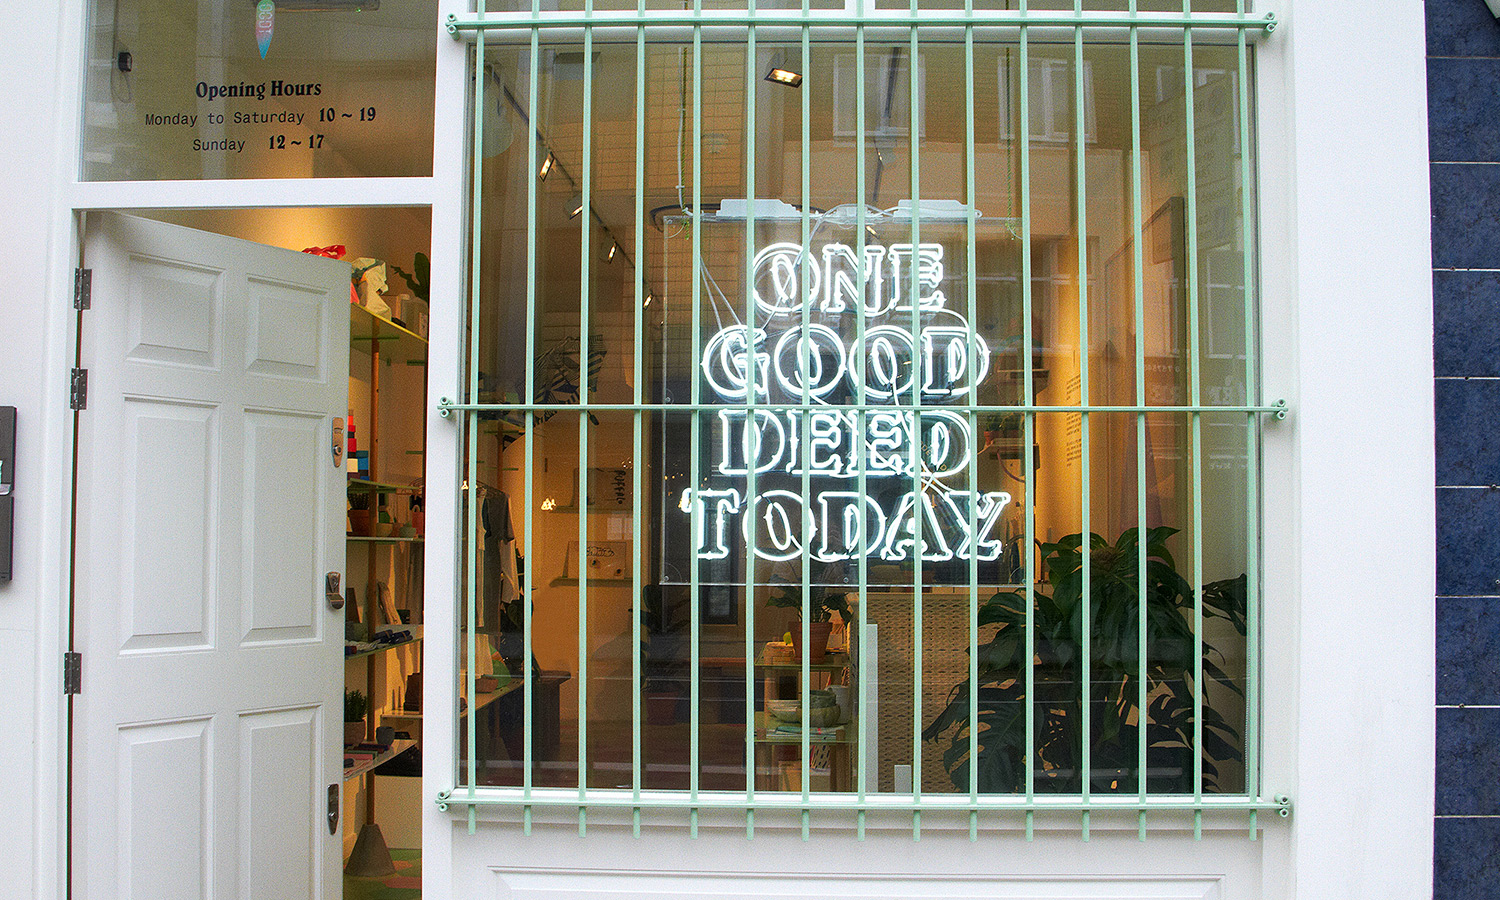 One-Good-Deed-Today---Store-FT-0